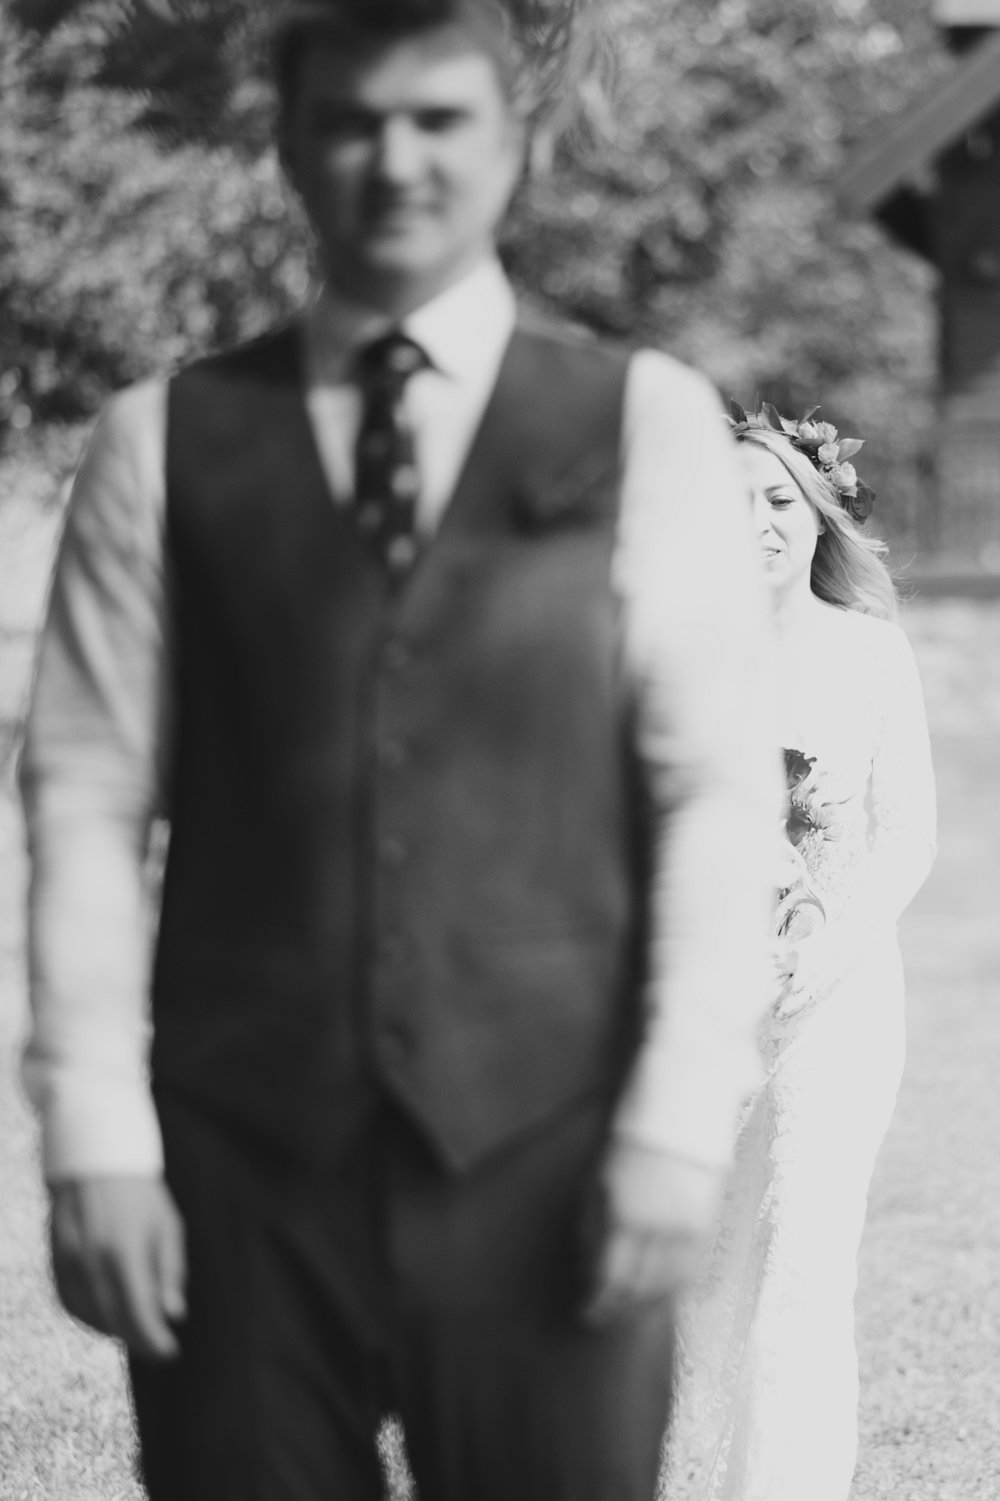 lindseyjane_wedding020.jpg